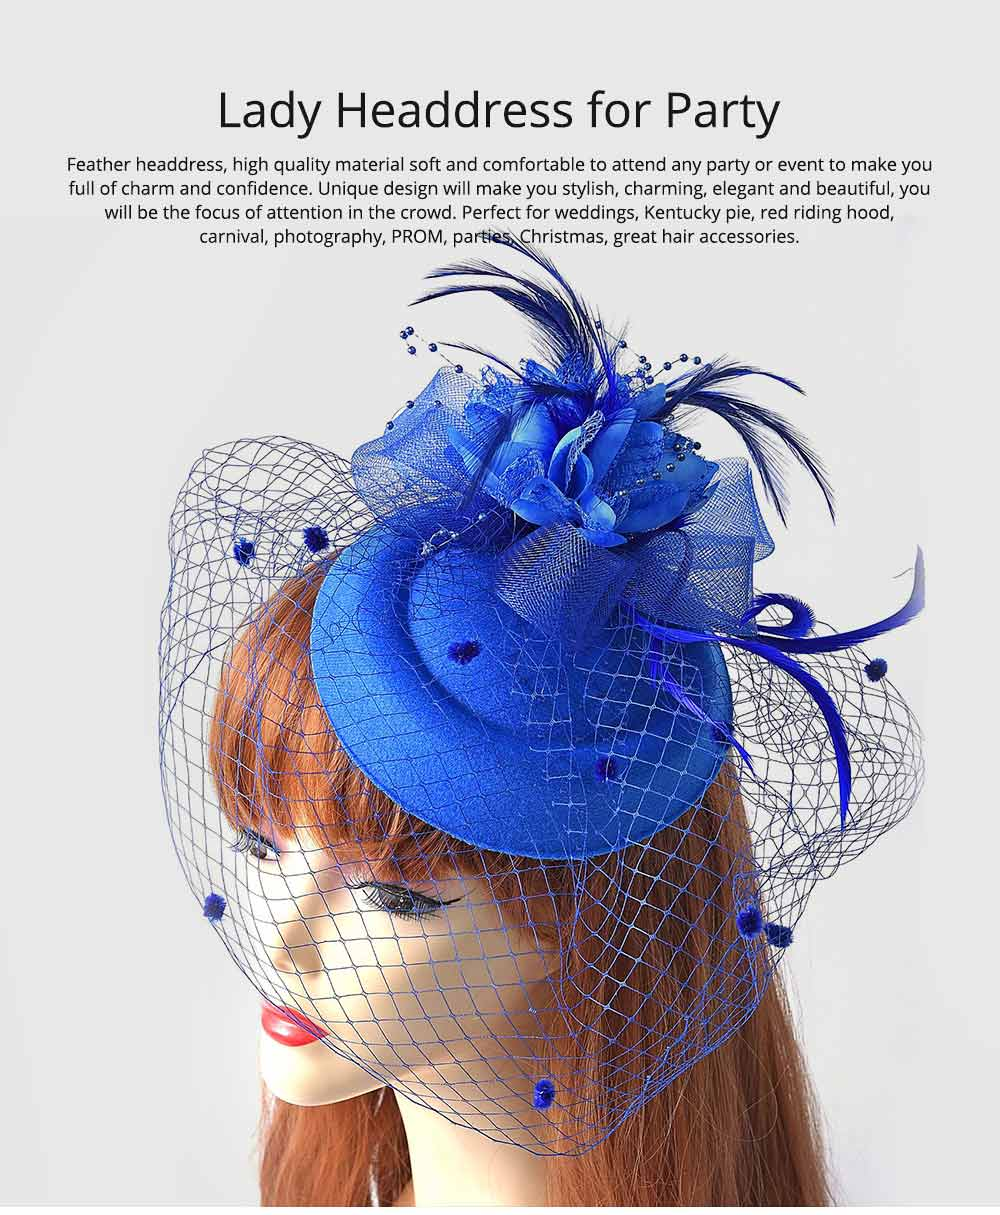 Party Hair Accessories Cocktail Hat, Elegant Hair Accessories for PROM & Party, Vintage Bow Feather Net & Veil Hat for Ladies 0